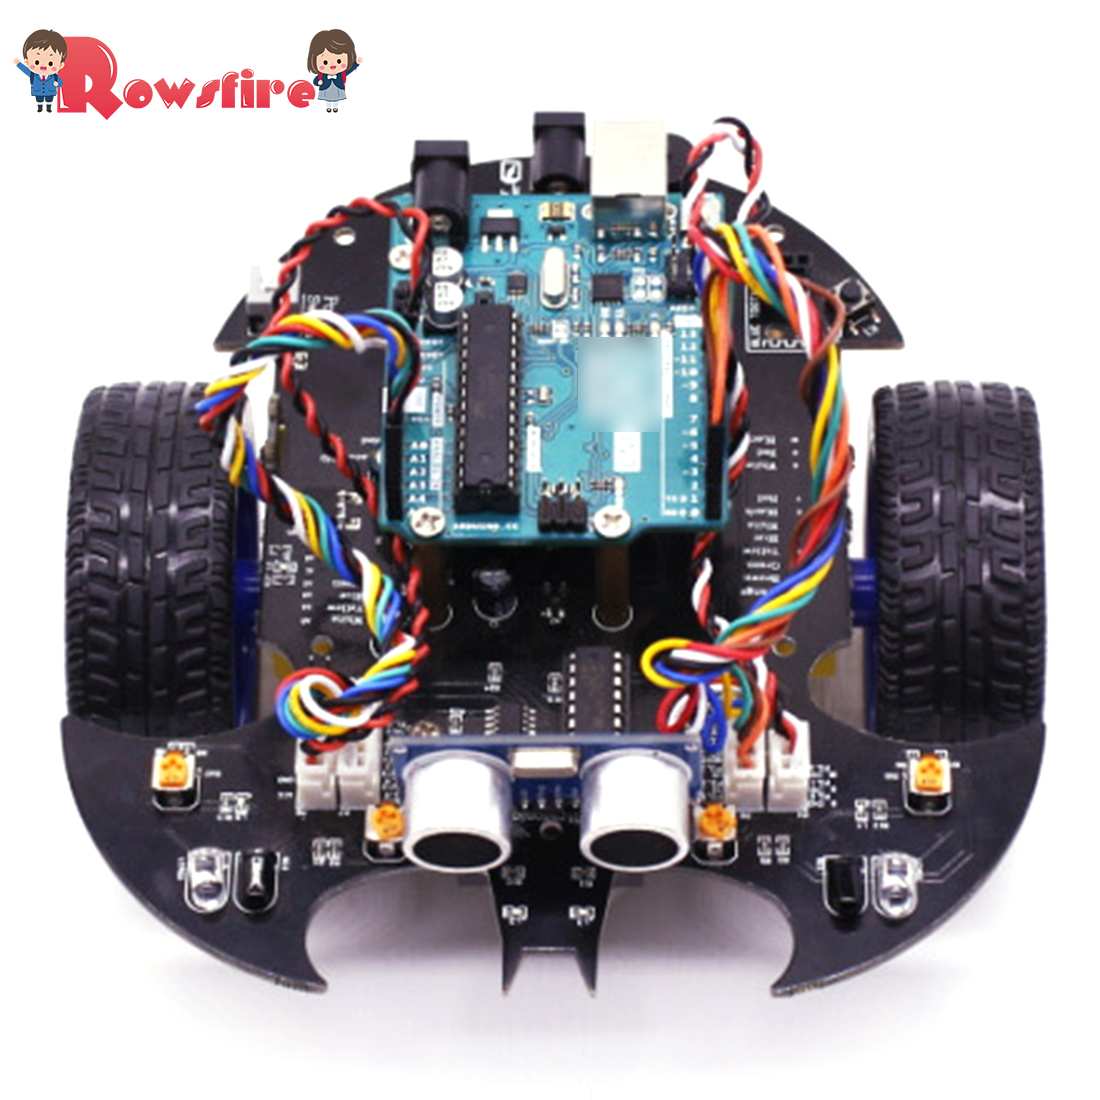 2019 Bat Smart Robot Car Project Complete Starter Kit With Tutorial Learning & Educational Electronic Toy For Arduino